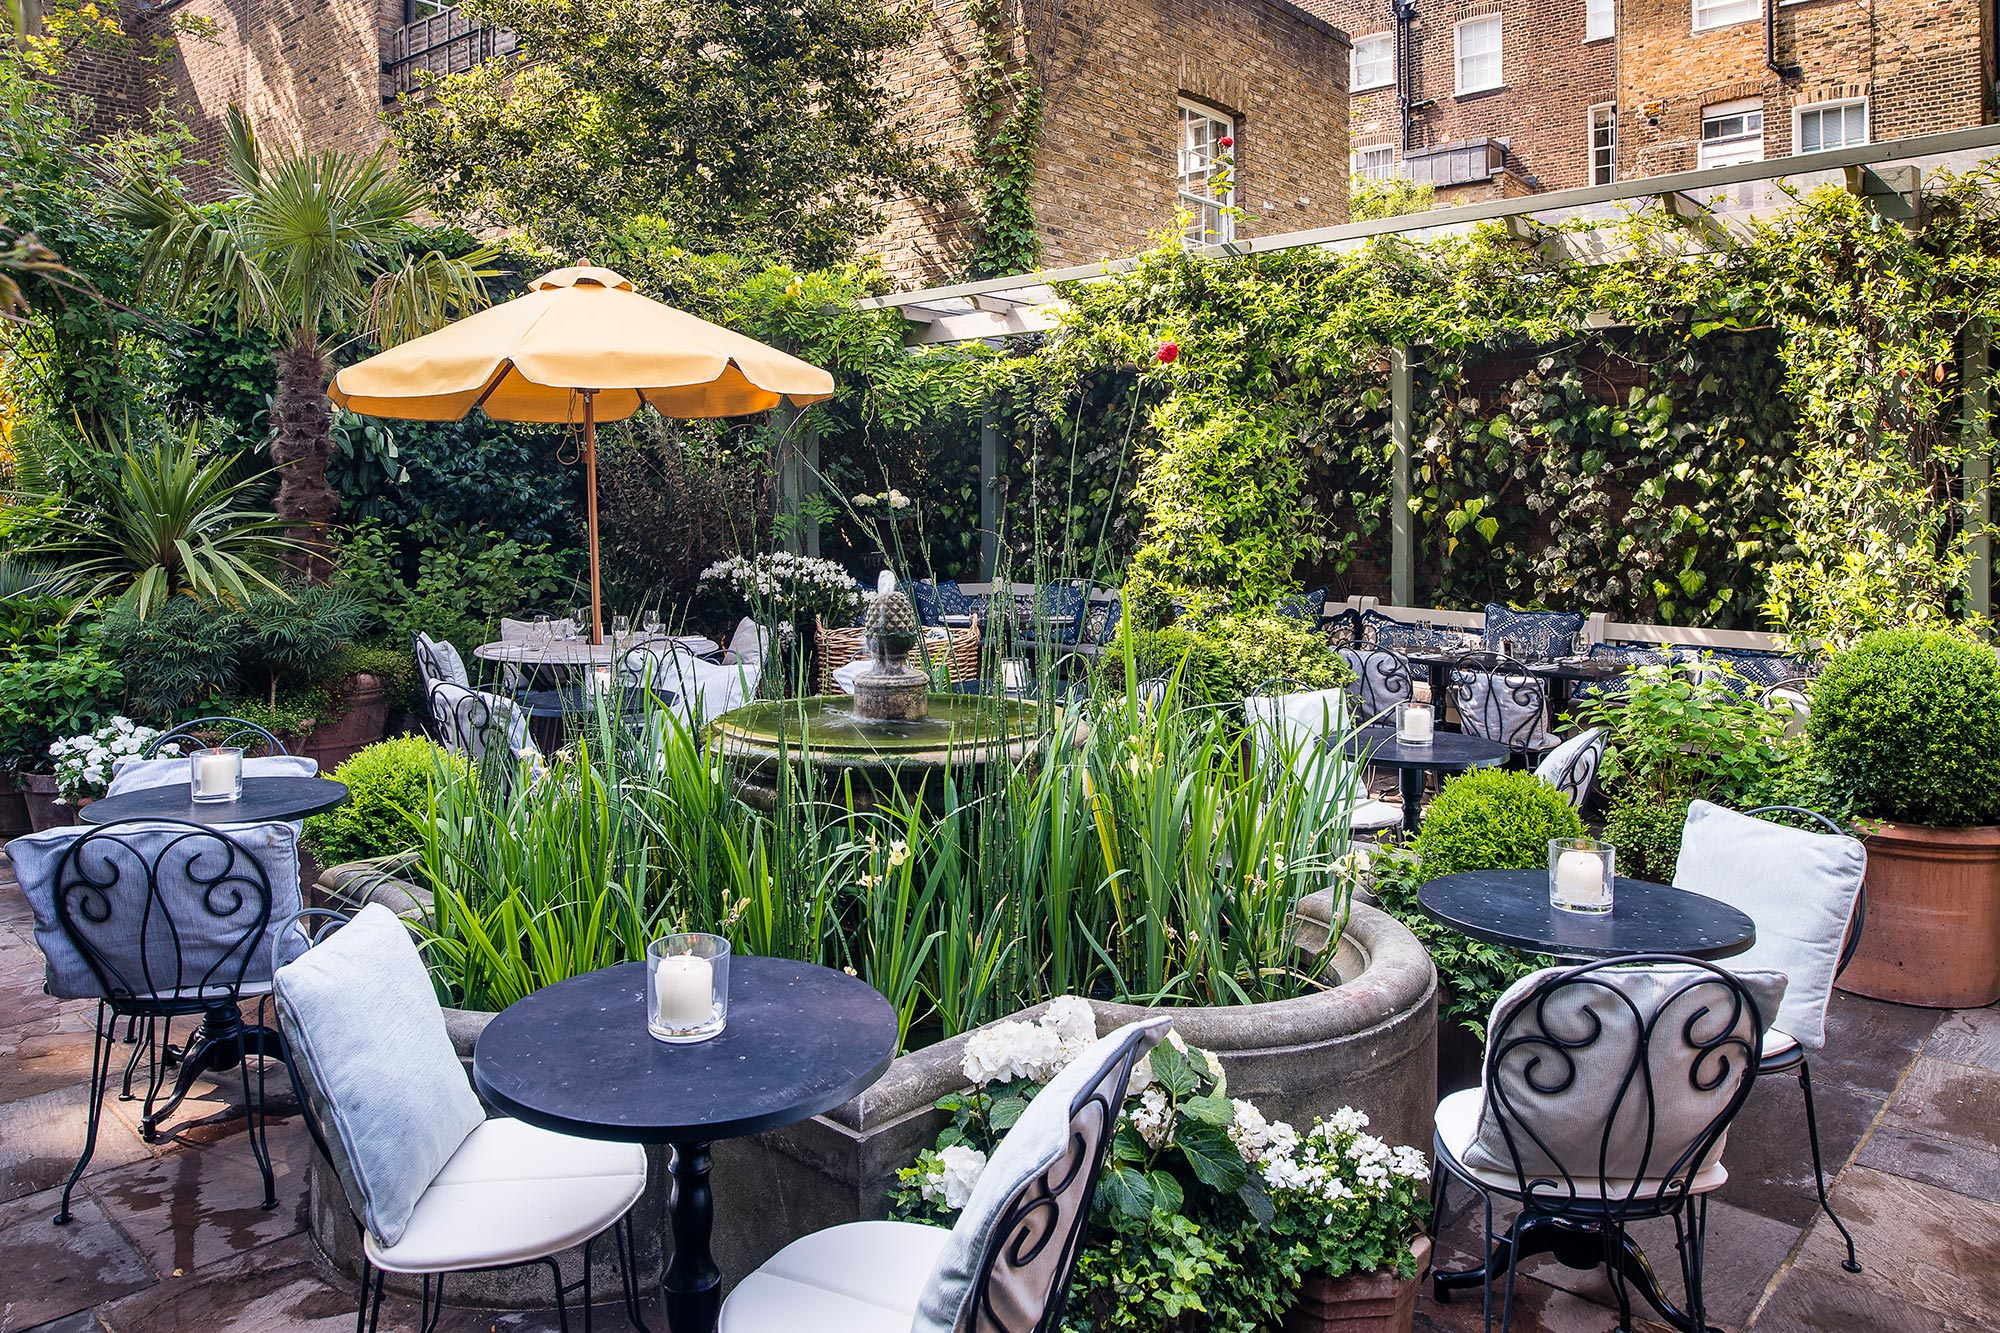 Al Fresco Dining at The Ivy Chelsea Garden - The Ivy Chelsea Garden